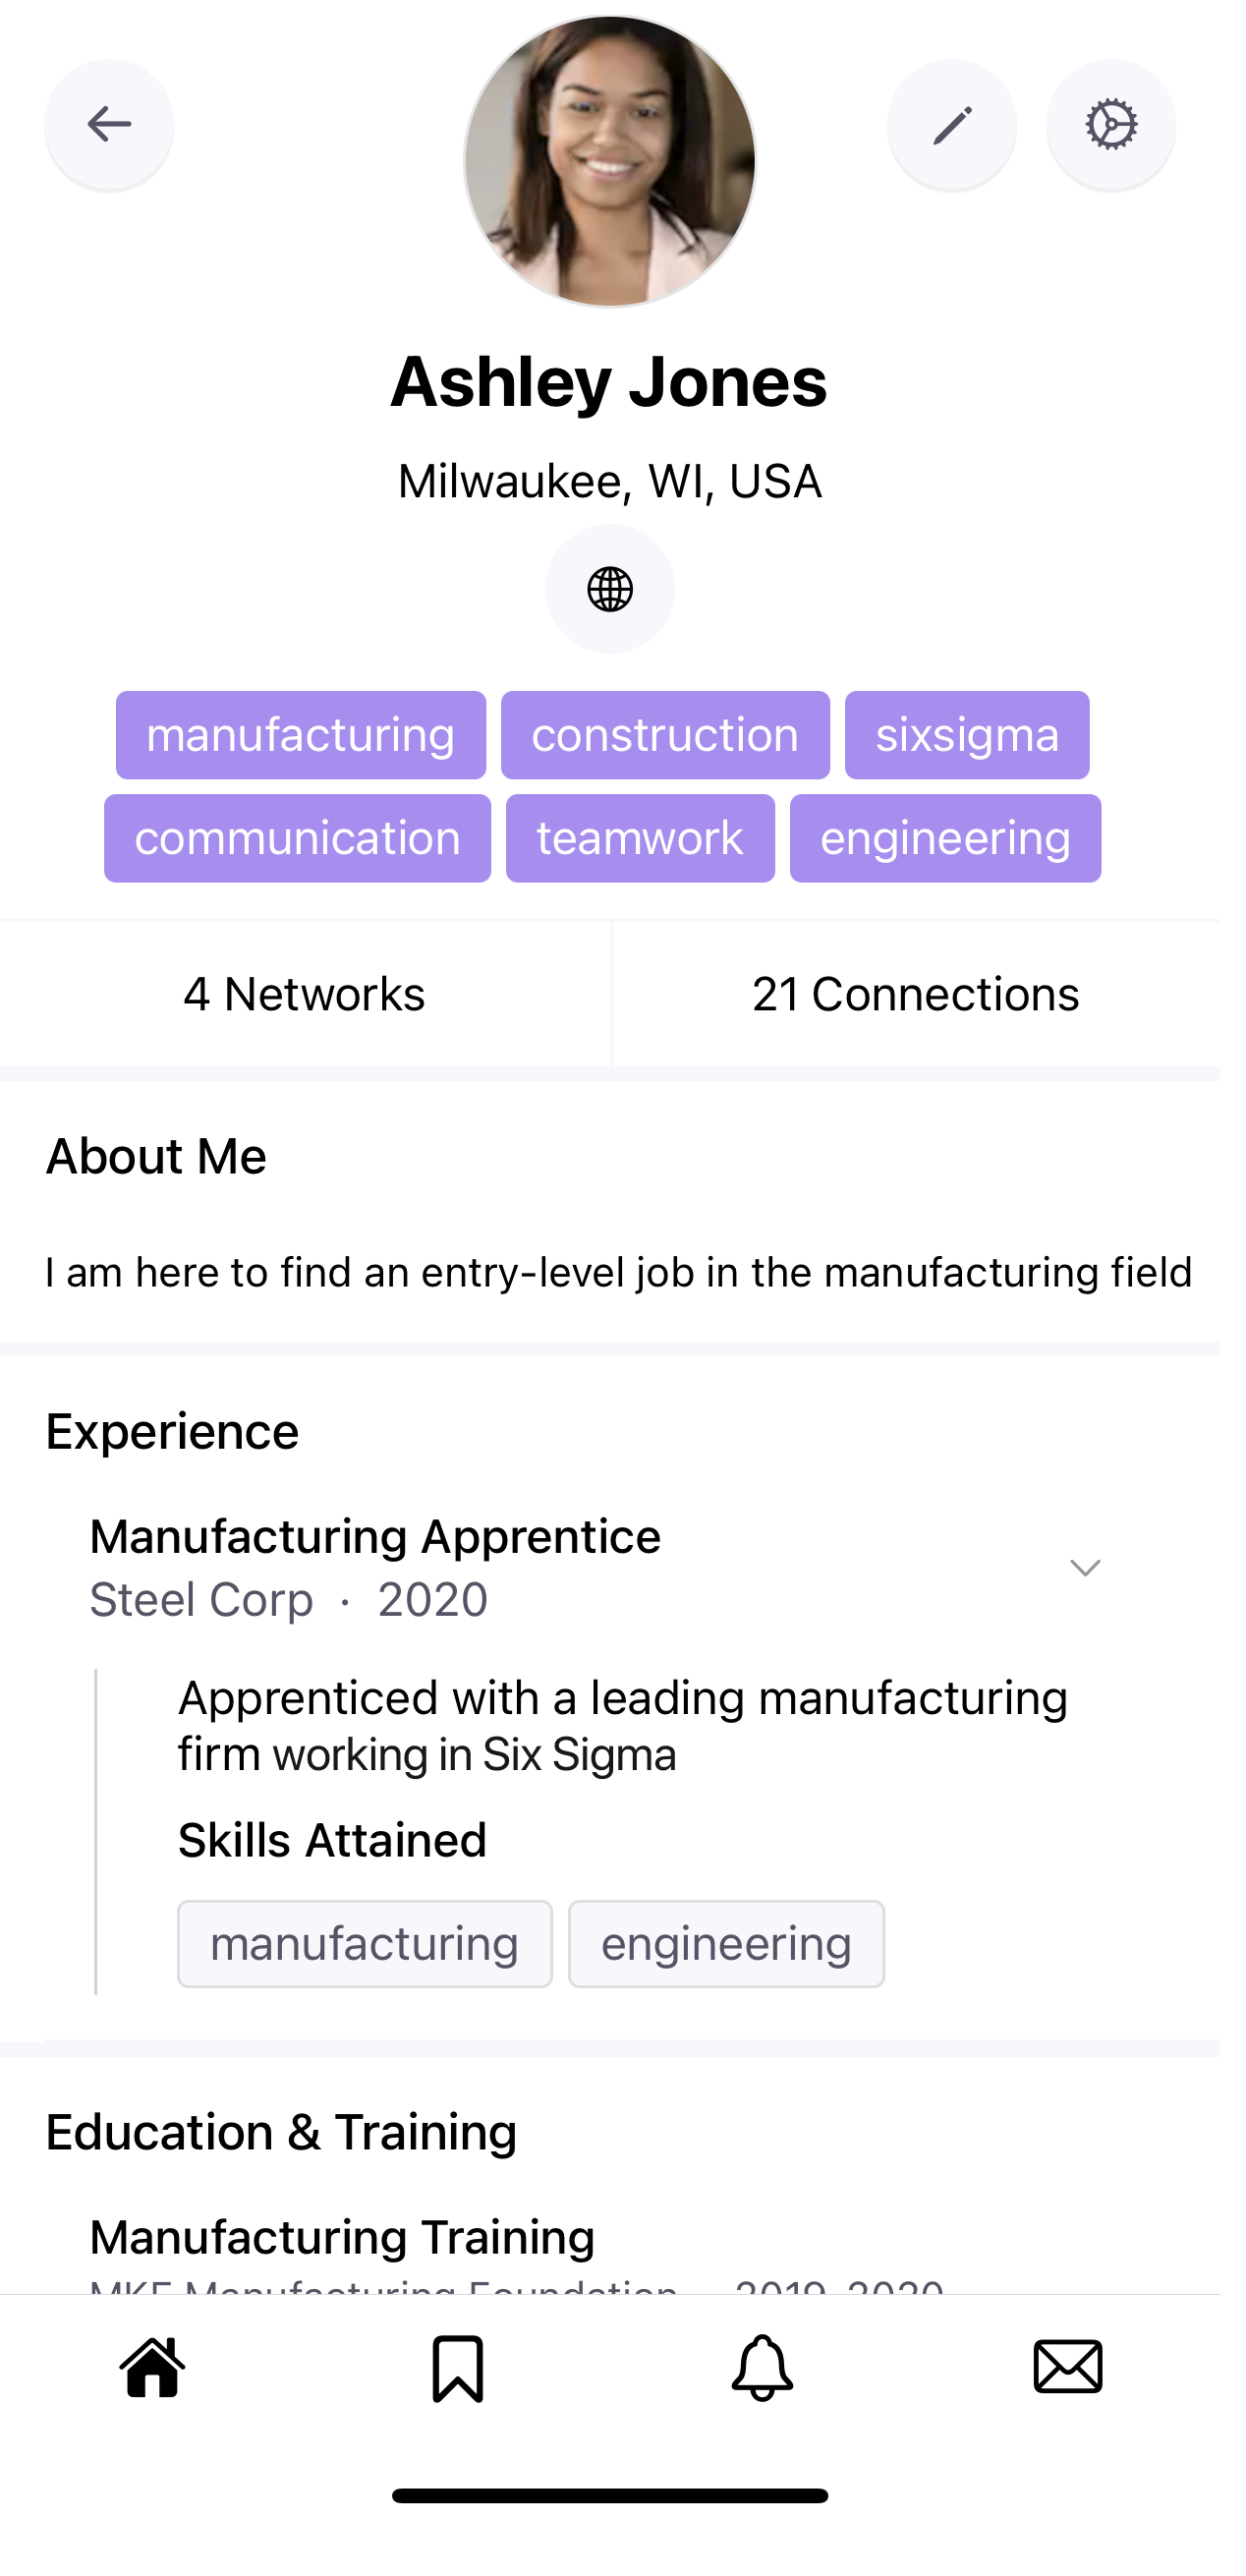 """Screenshot of a job seeker's profile. The job seeker has a Manufacturing Apprentice experience, with a short description. Underneath the description is a """"Skills Attained"""" section with 3 tags the job seeker has added as her skills."""